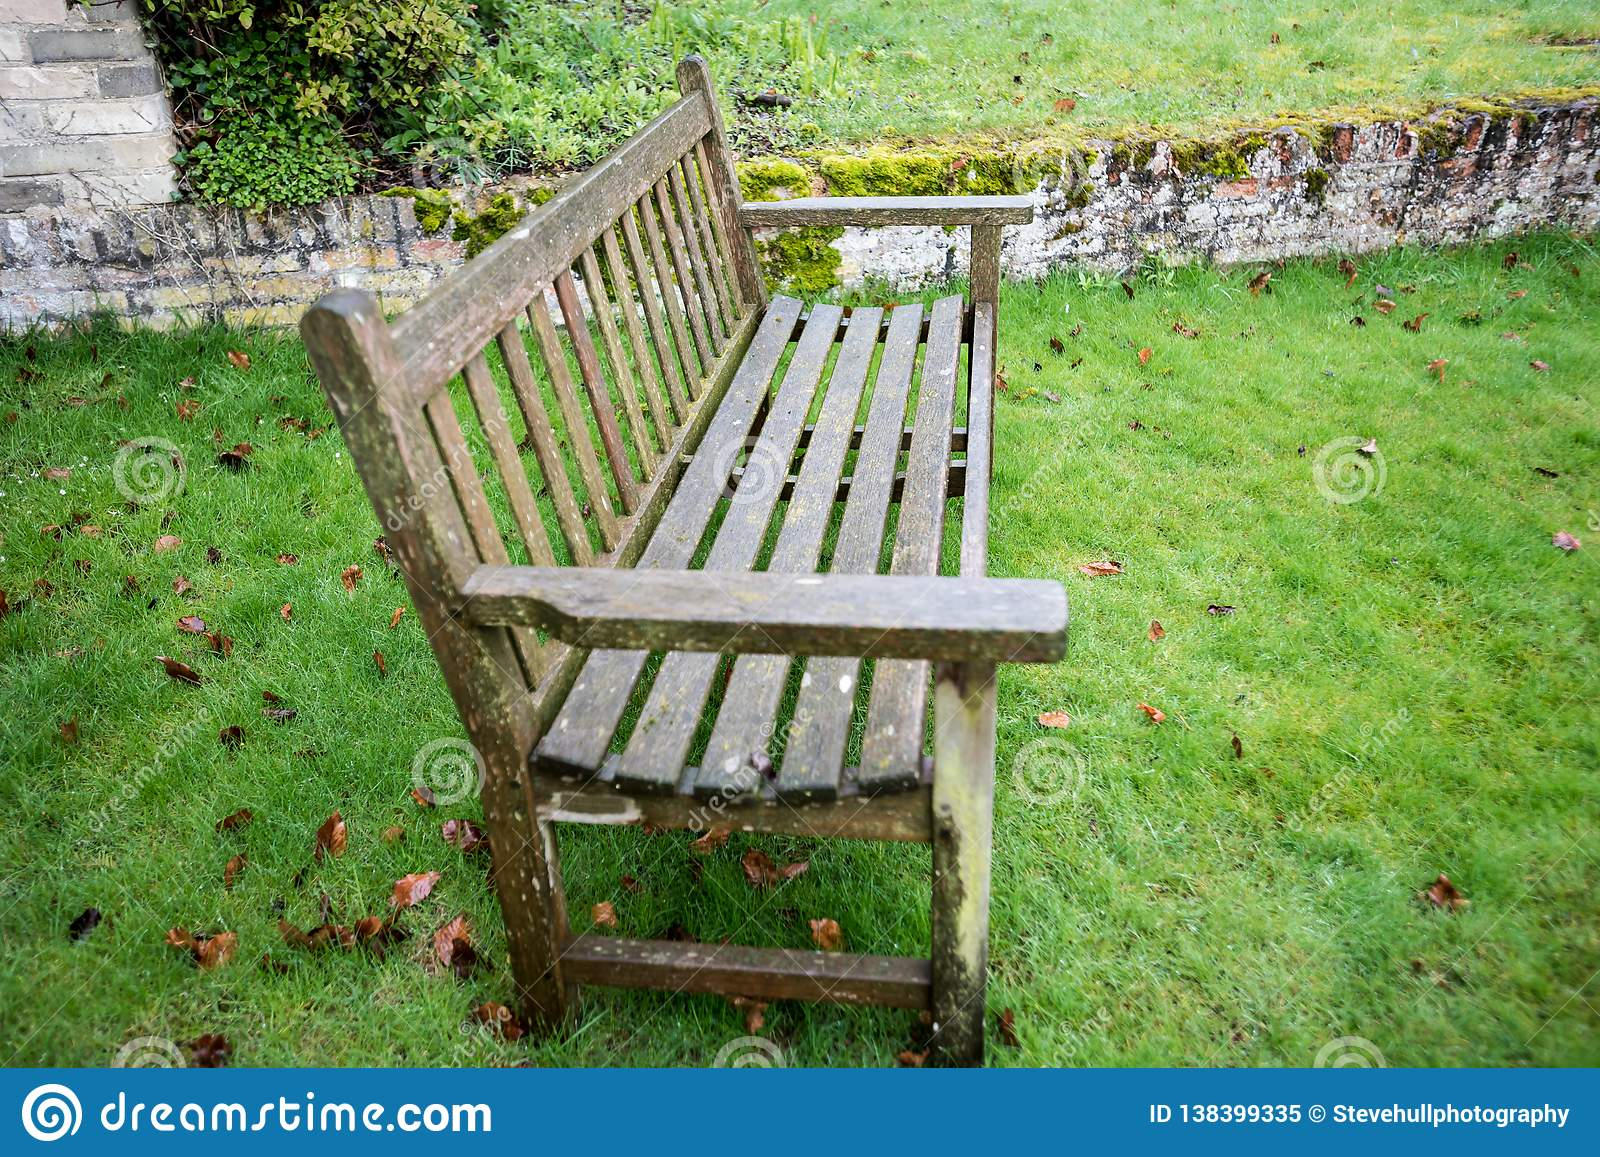 Wondrous Rustic Garden Bench On Bright Green Grass Stock Image Ncnpc Chair Design For Home Ncnpcorg